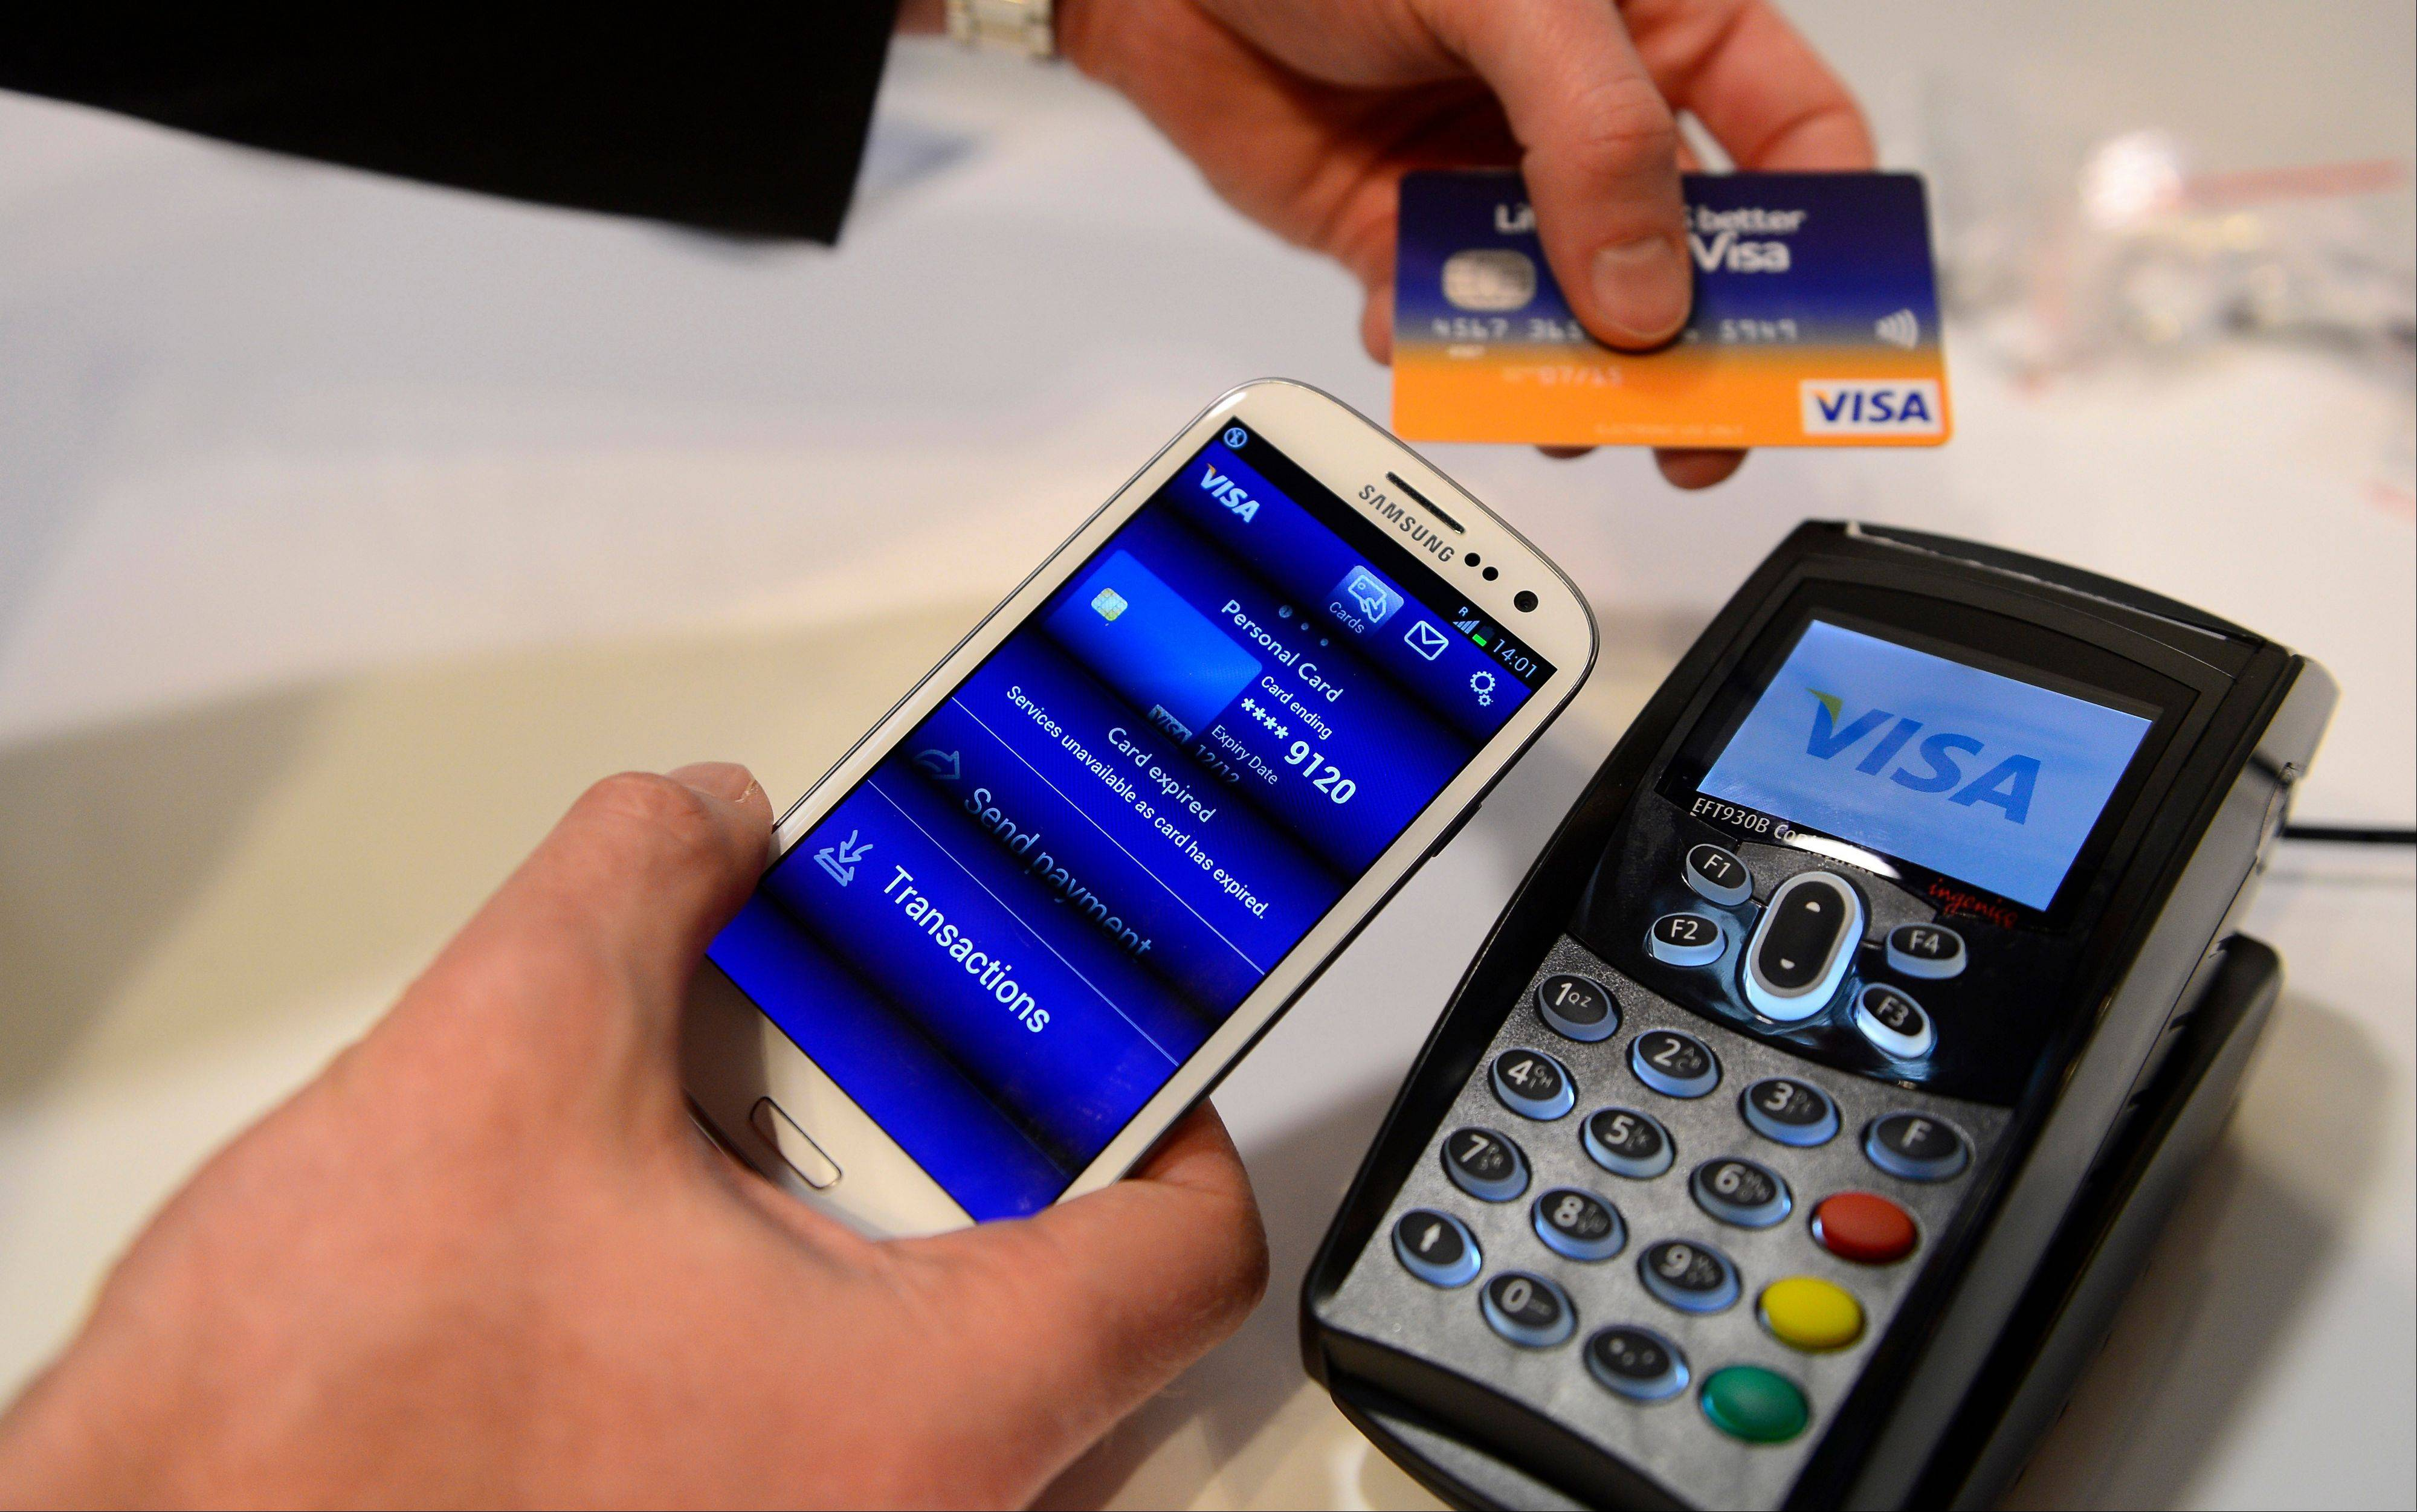 A man uses the NFC payment Visa system at the Mobile World Congress, the world's largest mobile phone trade show, in Barcelona, Spain.